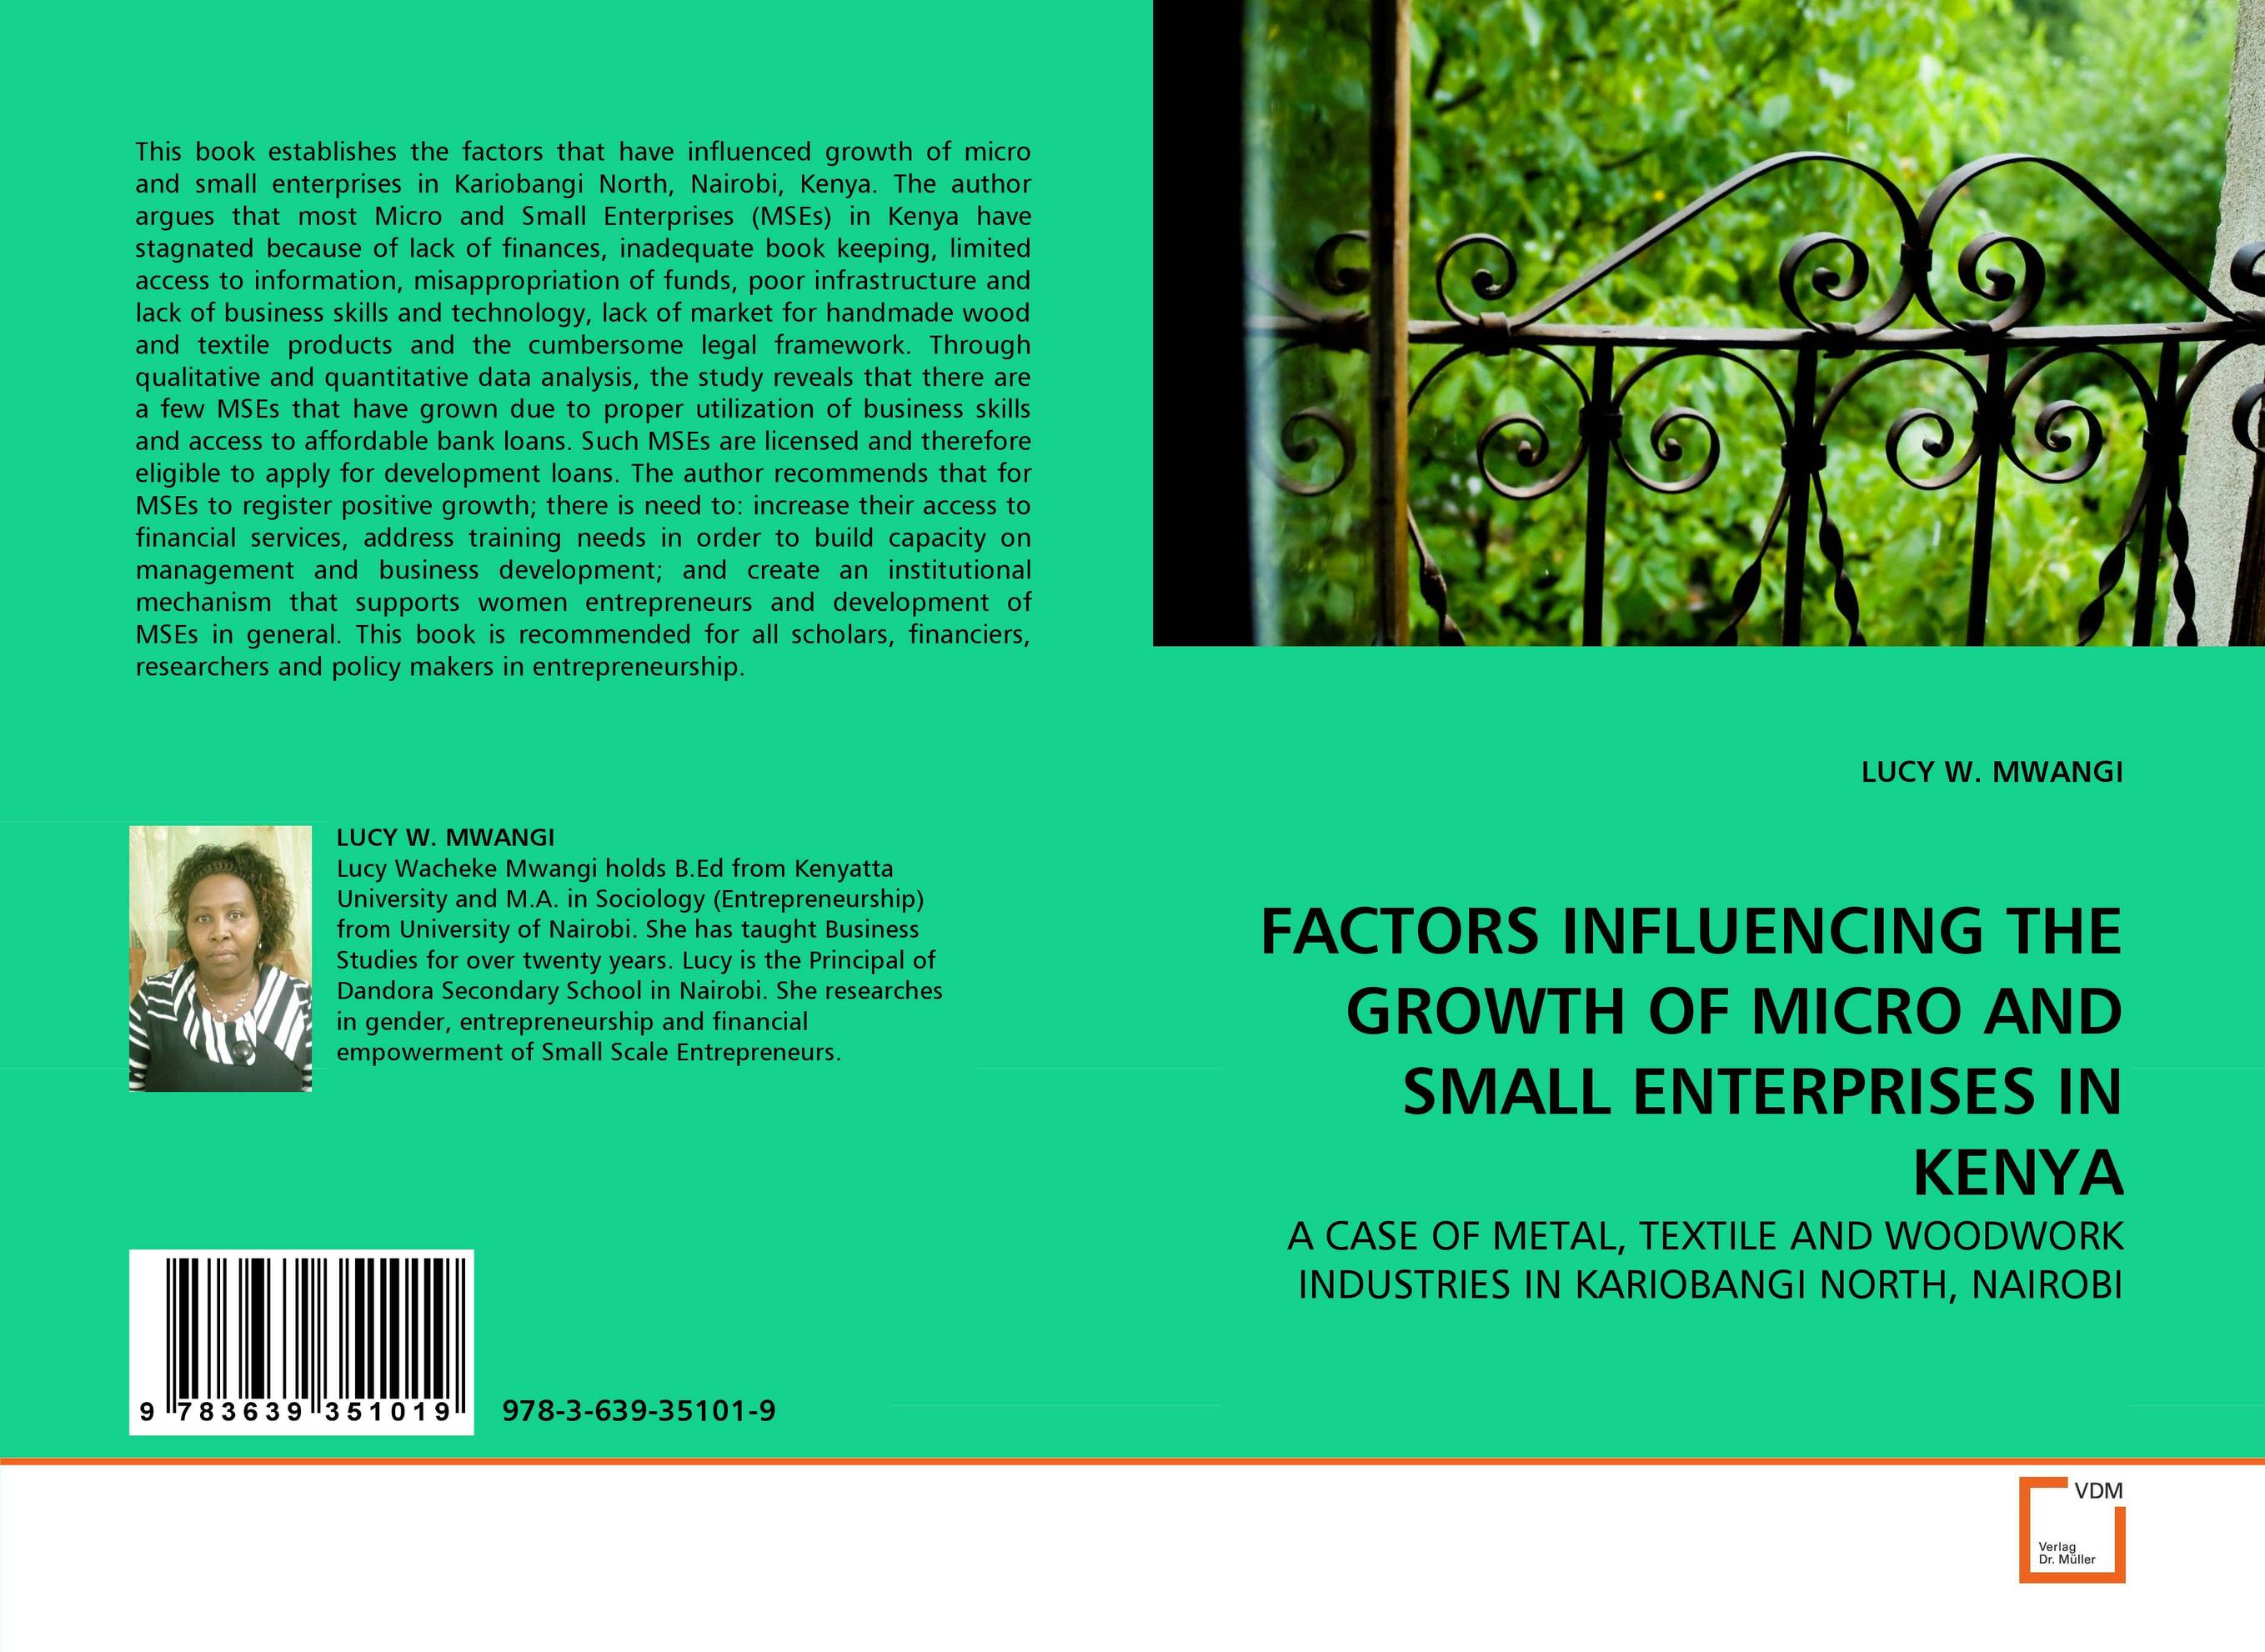 FACTORS INFLUENCING THE GROWTH OF MICRO AND SMALL ENTERPRISES IN KENYA